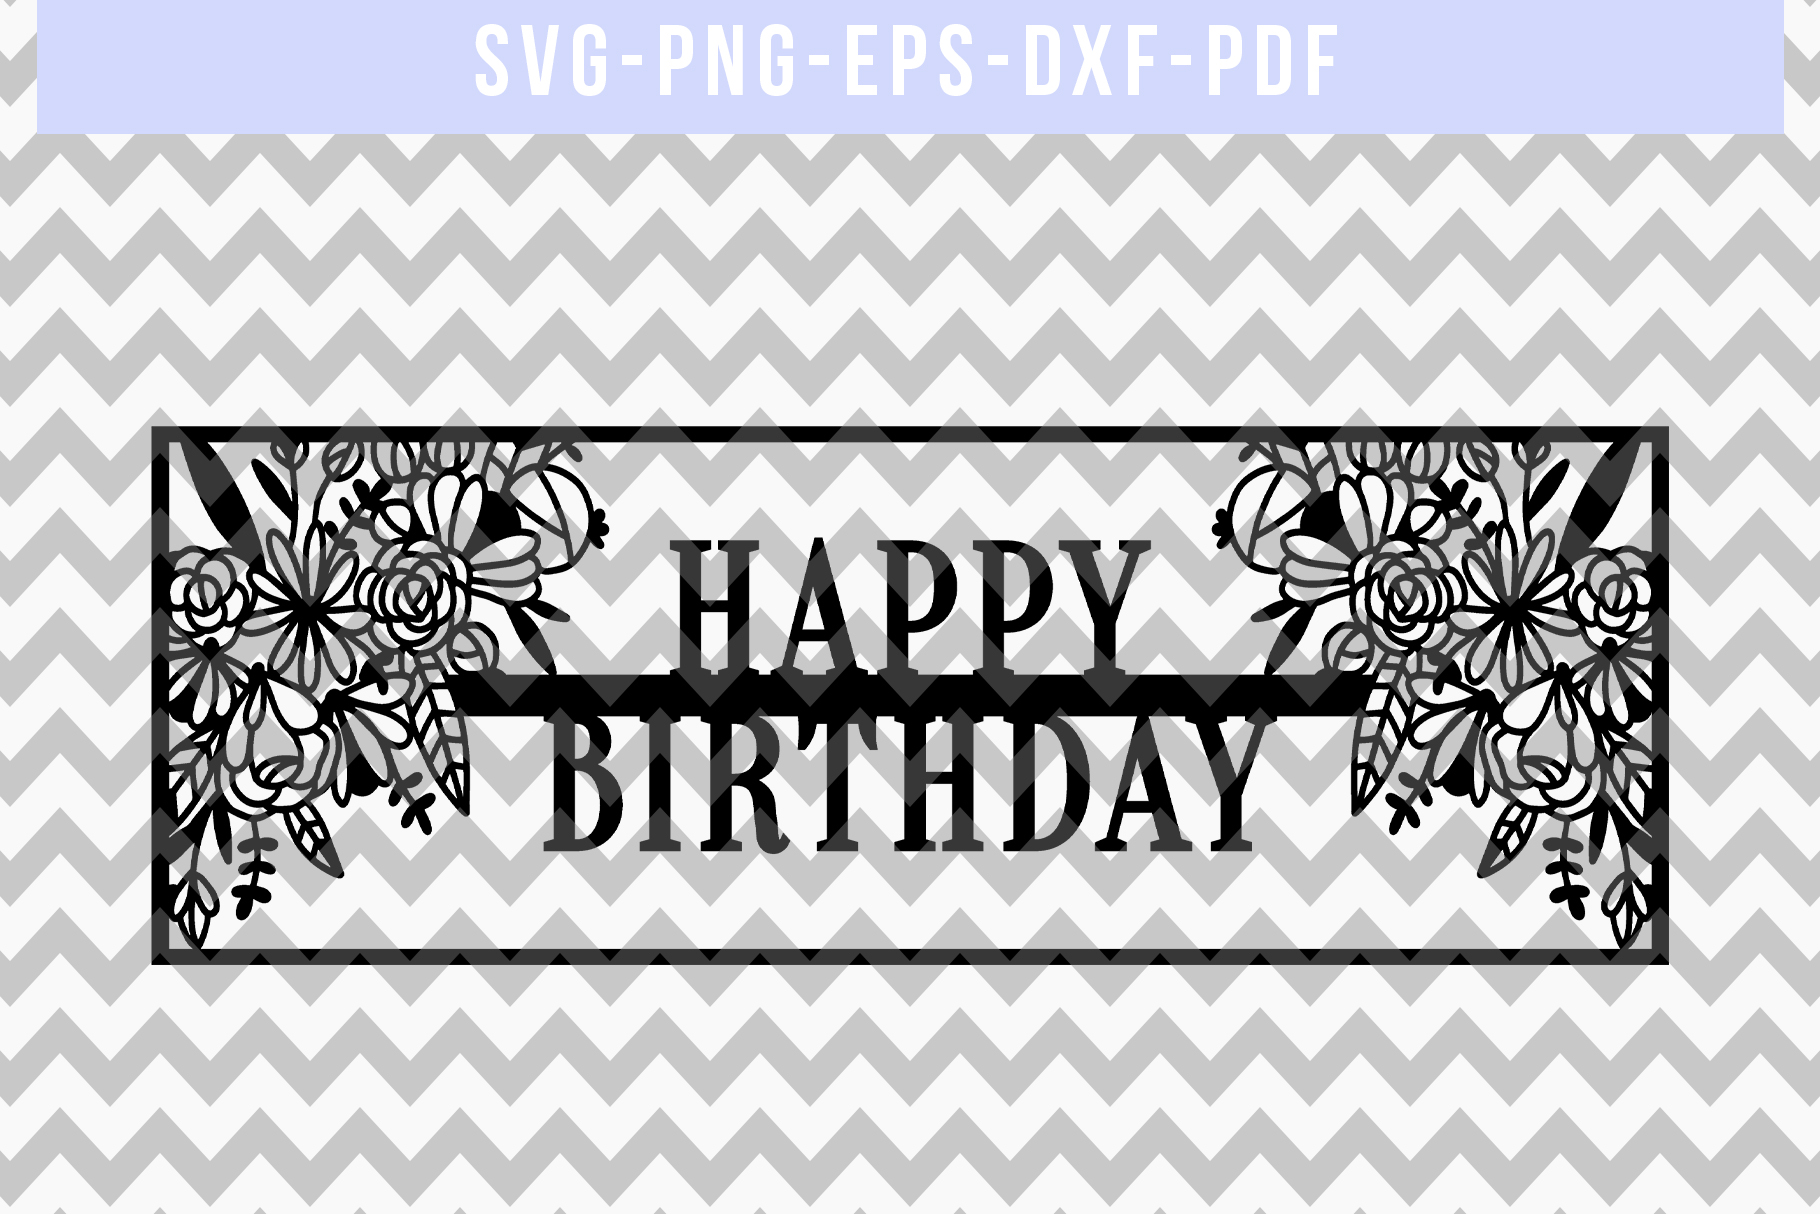 Happy Birthday Papercut Template, Birthday Frame SVG PDF DXF example image 4